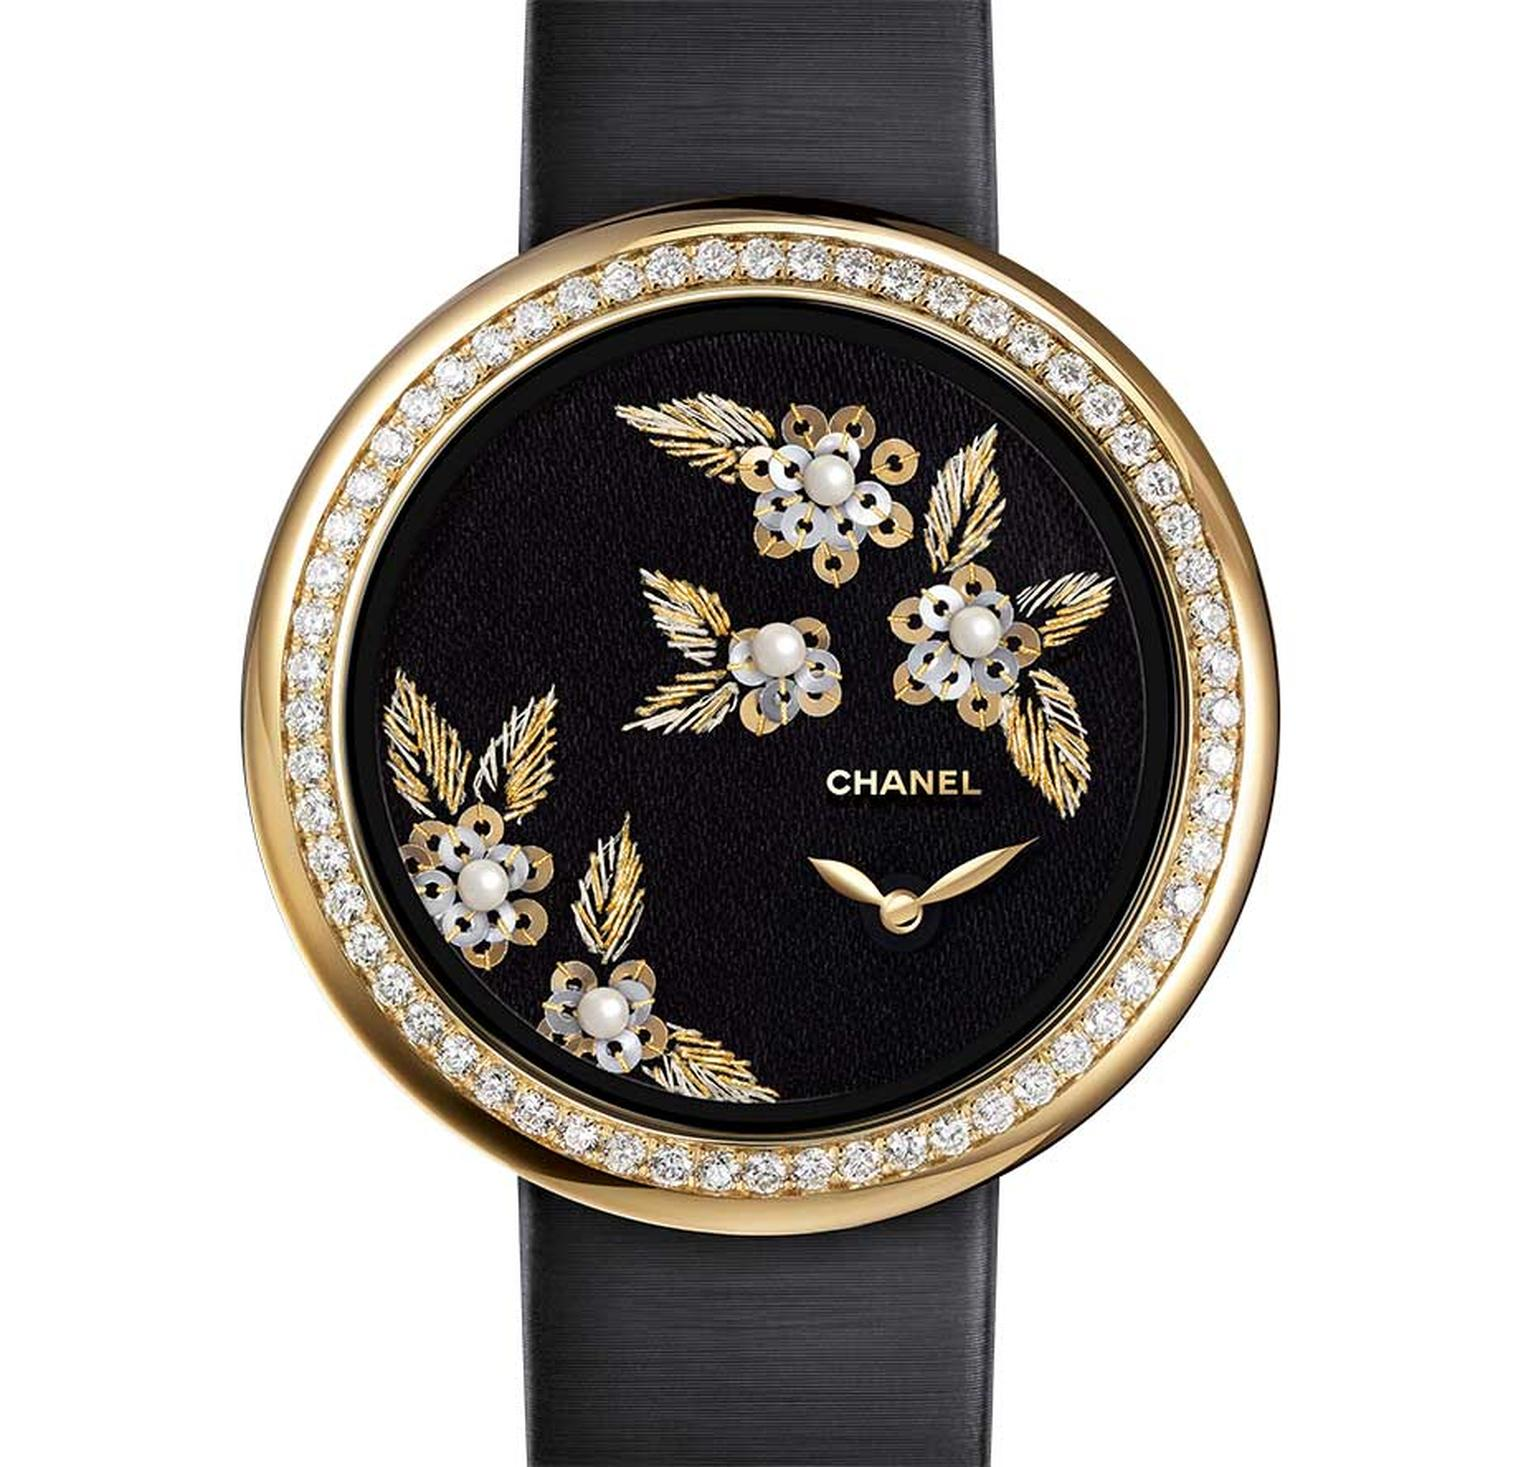 Chanel Mademoiselle Privé Camellia Brodé Lesage watch, hand embroidered with gold and green silk thread, thread, yellow and white hold gold sequins and natural pearls